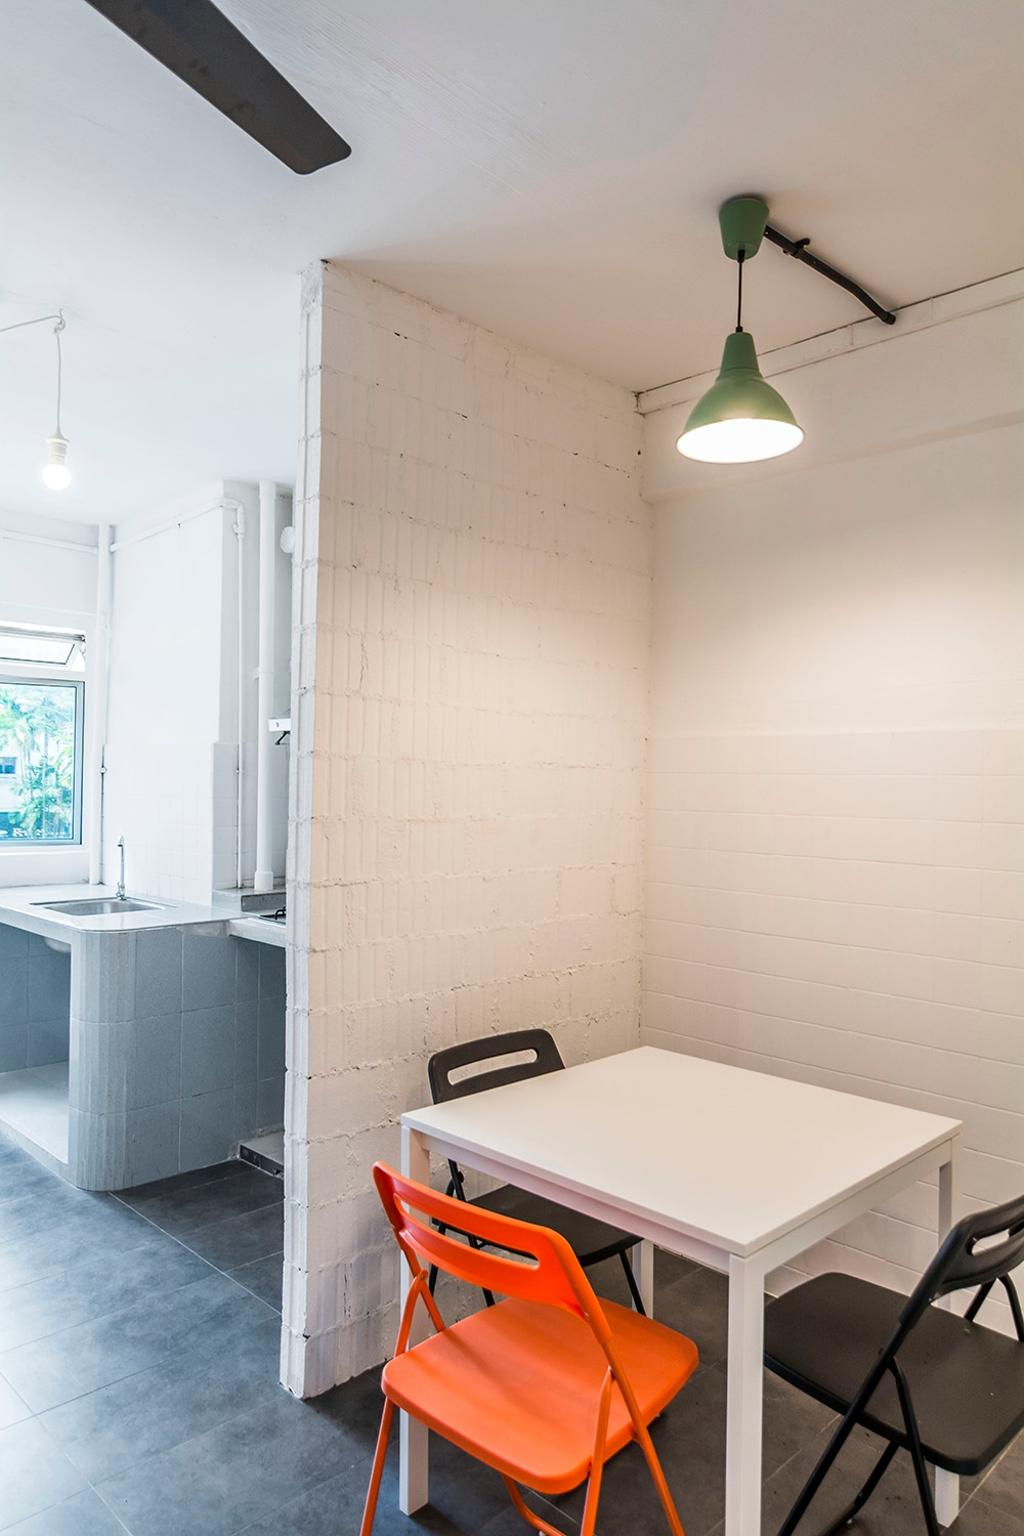 Shophouse - Office + Residence, Commercial, Architect, OWMF Architecture, Industrial, Bathroom, Indoors, Interior Design, Room